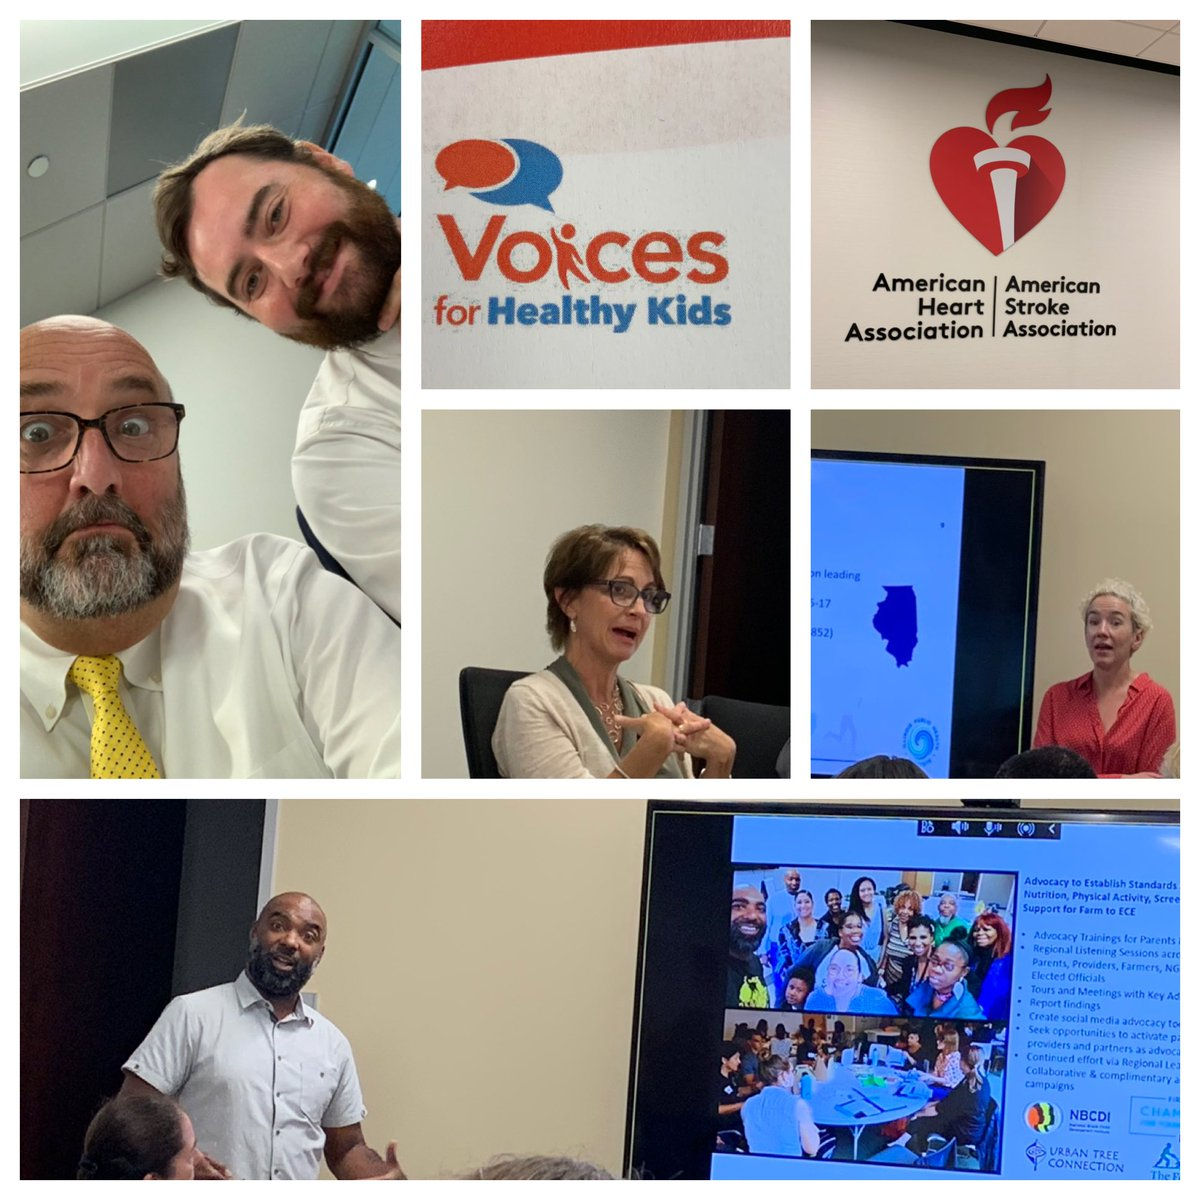 So inspired by the work of #HealthyLiving leaders and @Voices4HK. @American_Heart and @RWJF are great partners w #ymca #yadvocates! Miss seeing @MonicaHVinluan but fun to visit w @DwayneWharton and @tjsheridan!<br>http://pic.twitter.com/2X55x6SBJ3